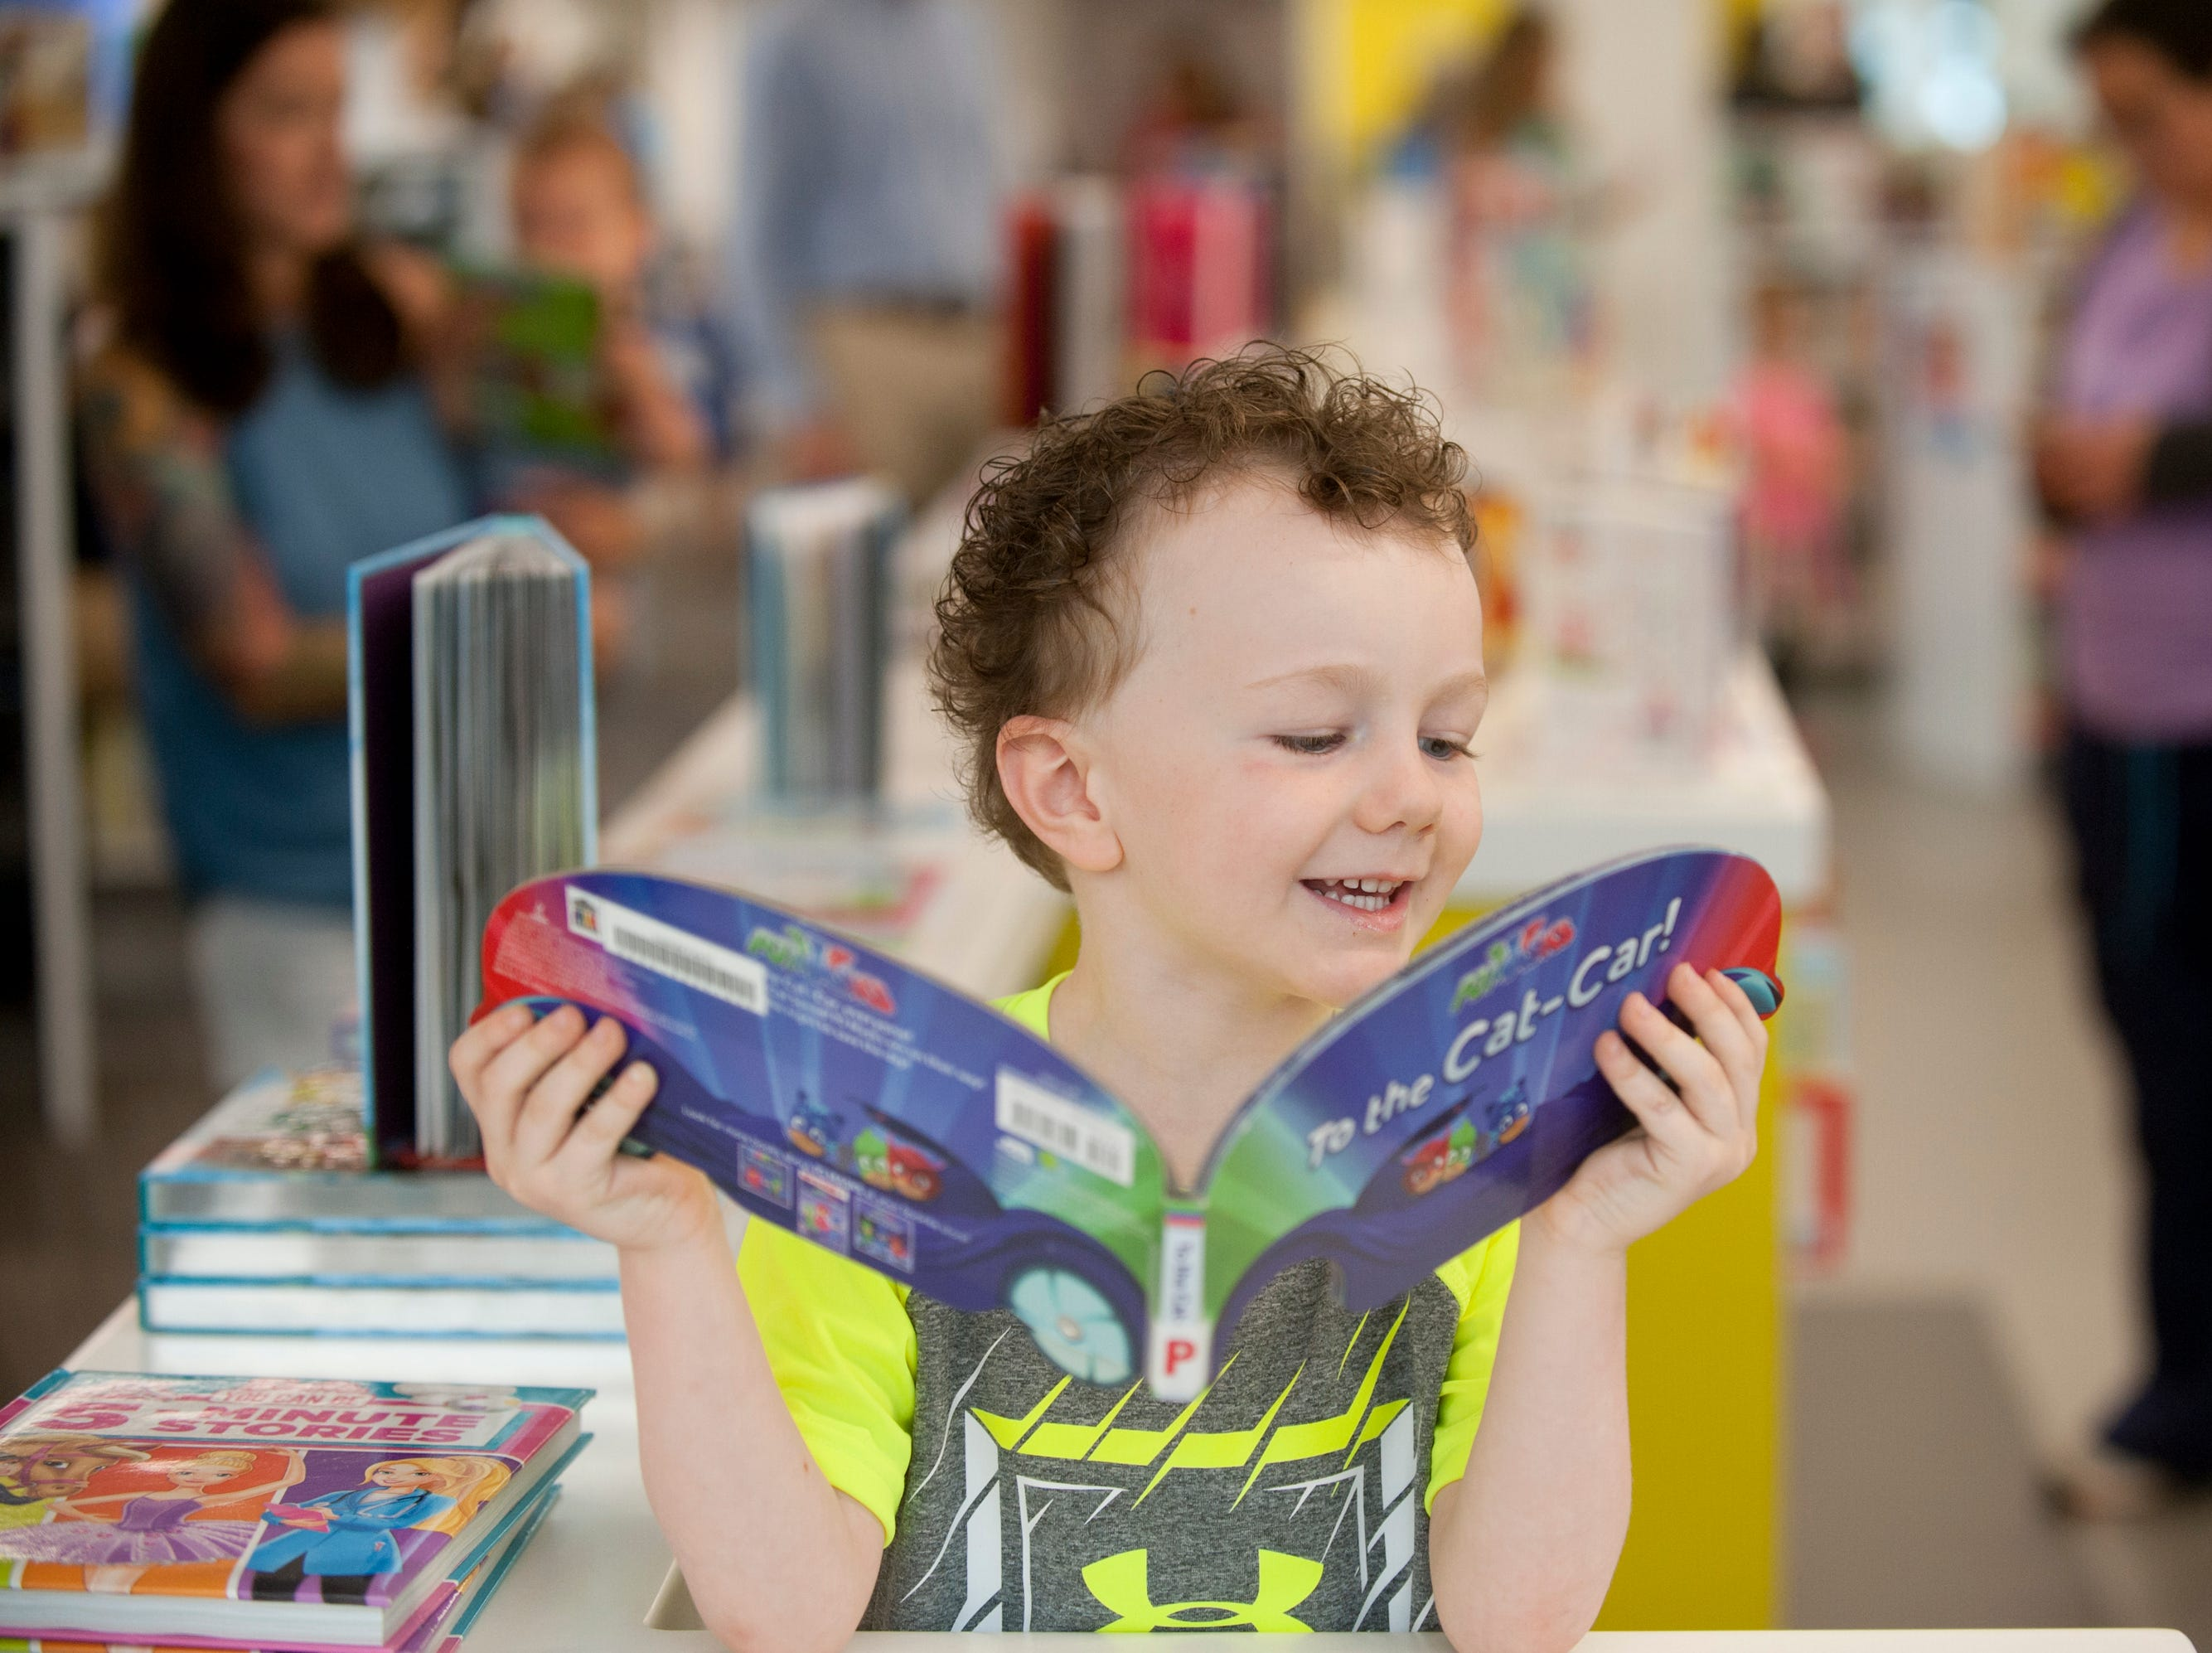 Gregory Benson, 4, of the Hikes Point neighborhood was looking at a book in the new children's library area. May 9, 2019